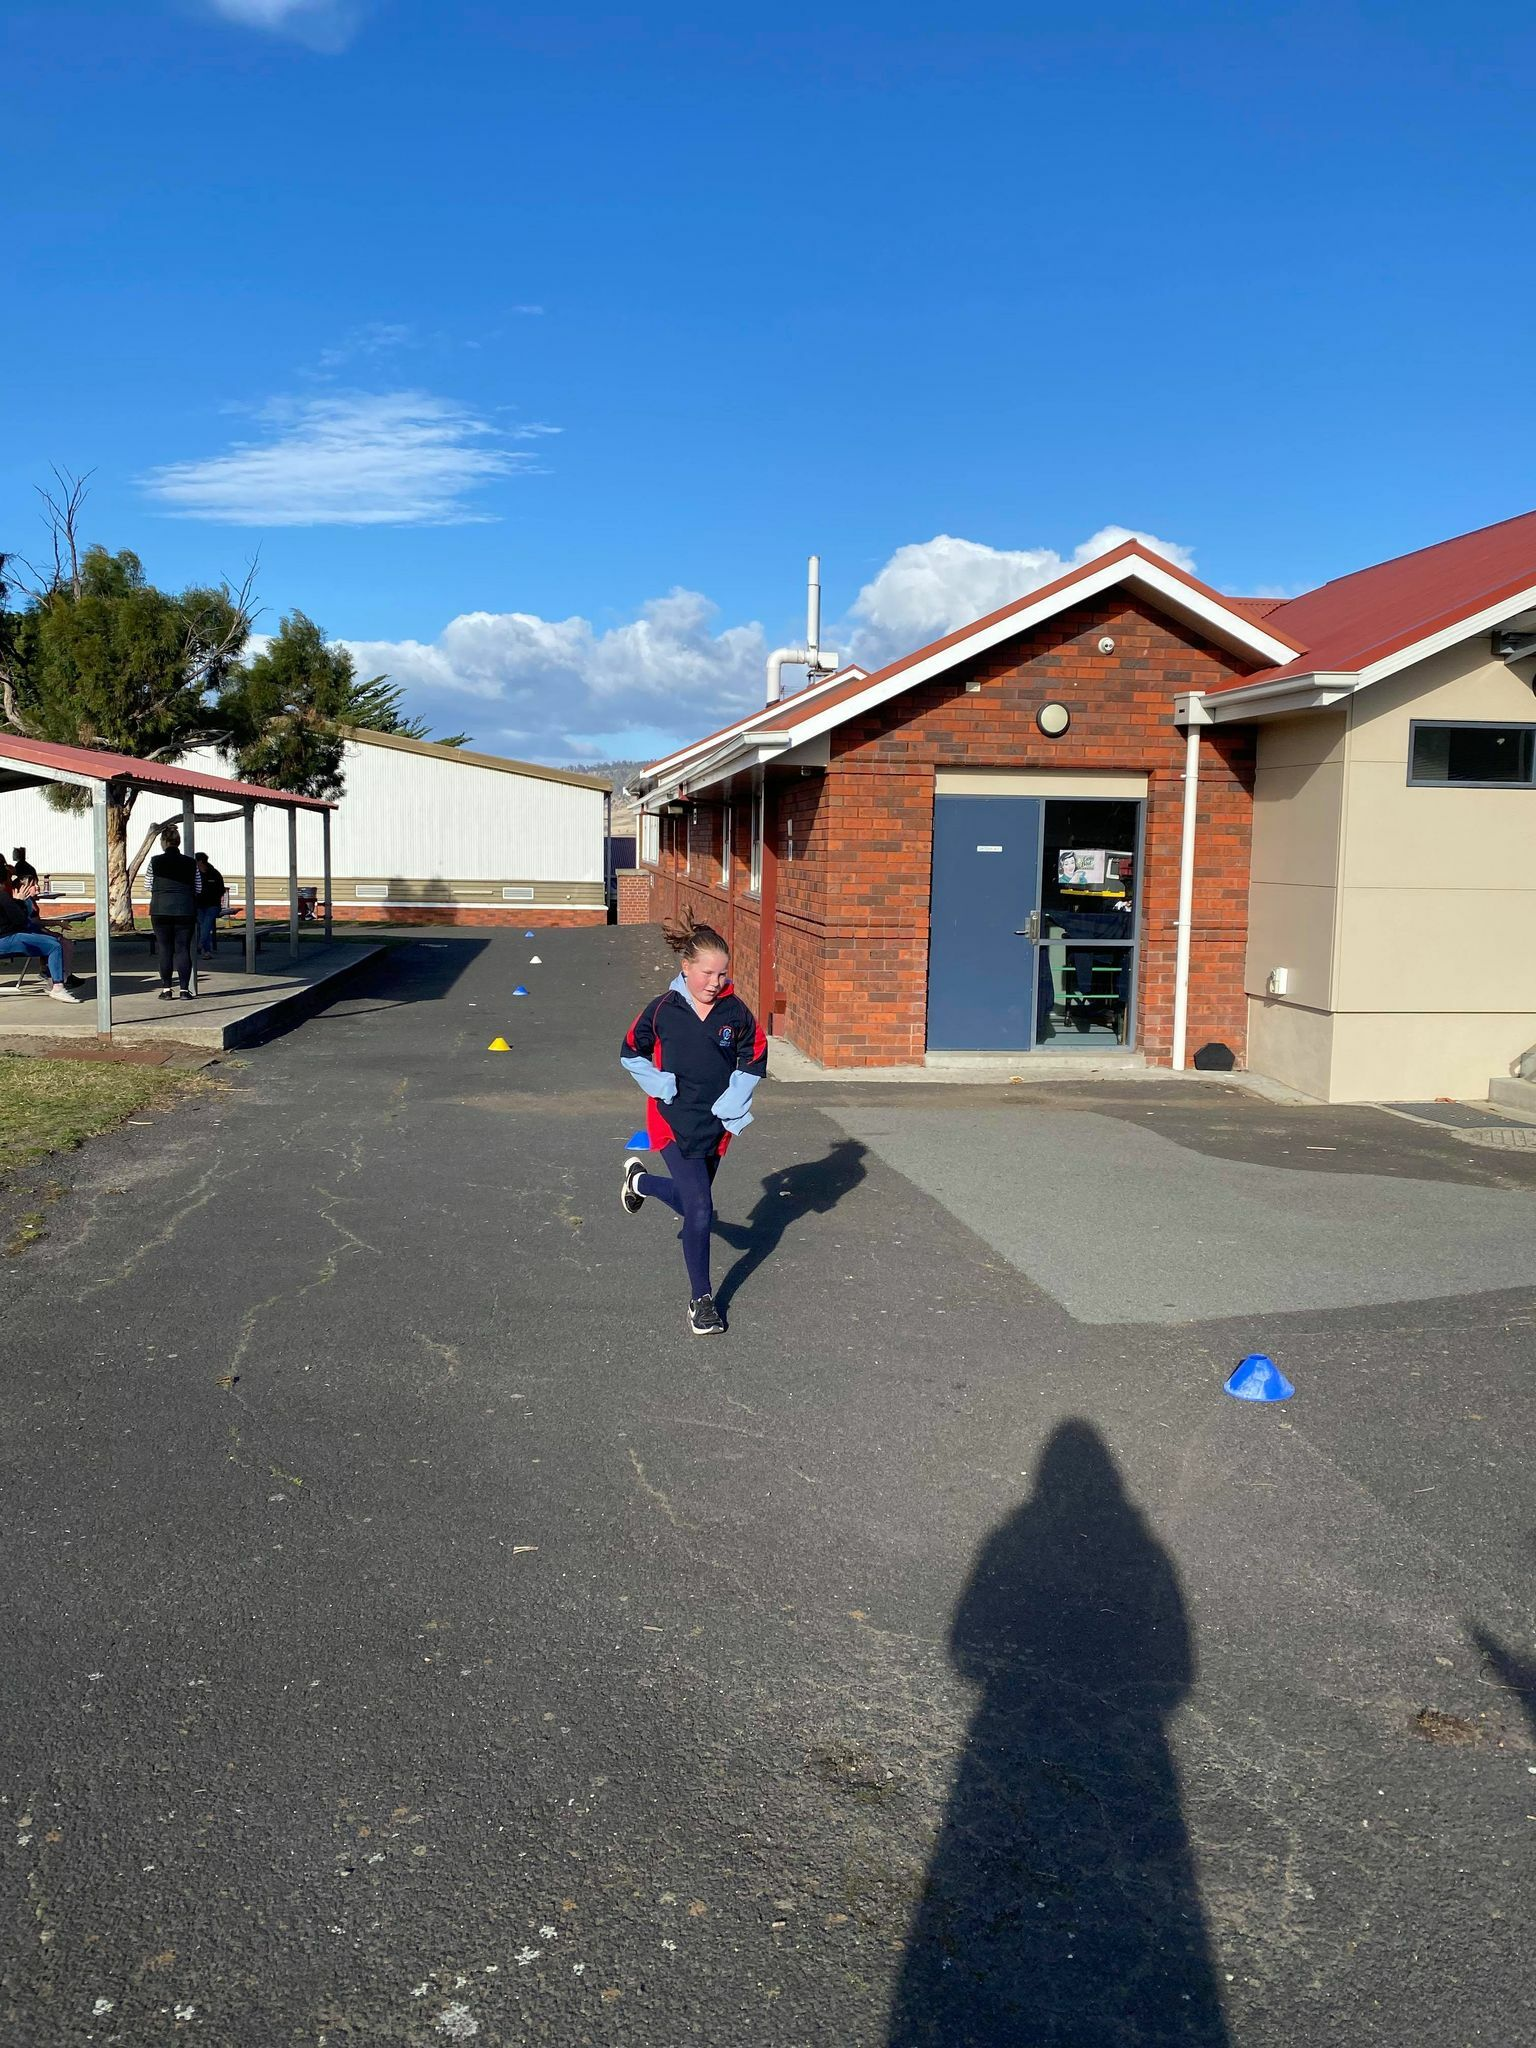 Primary Cross Country 1